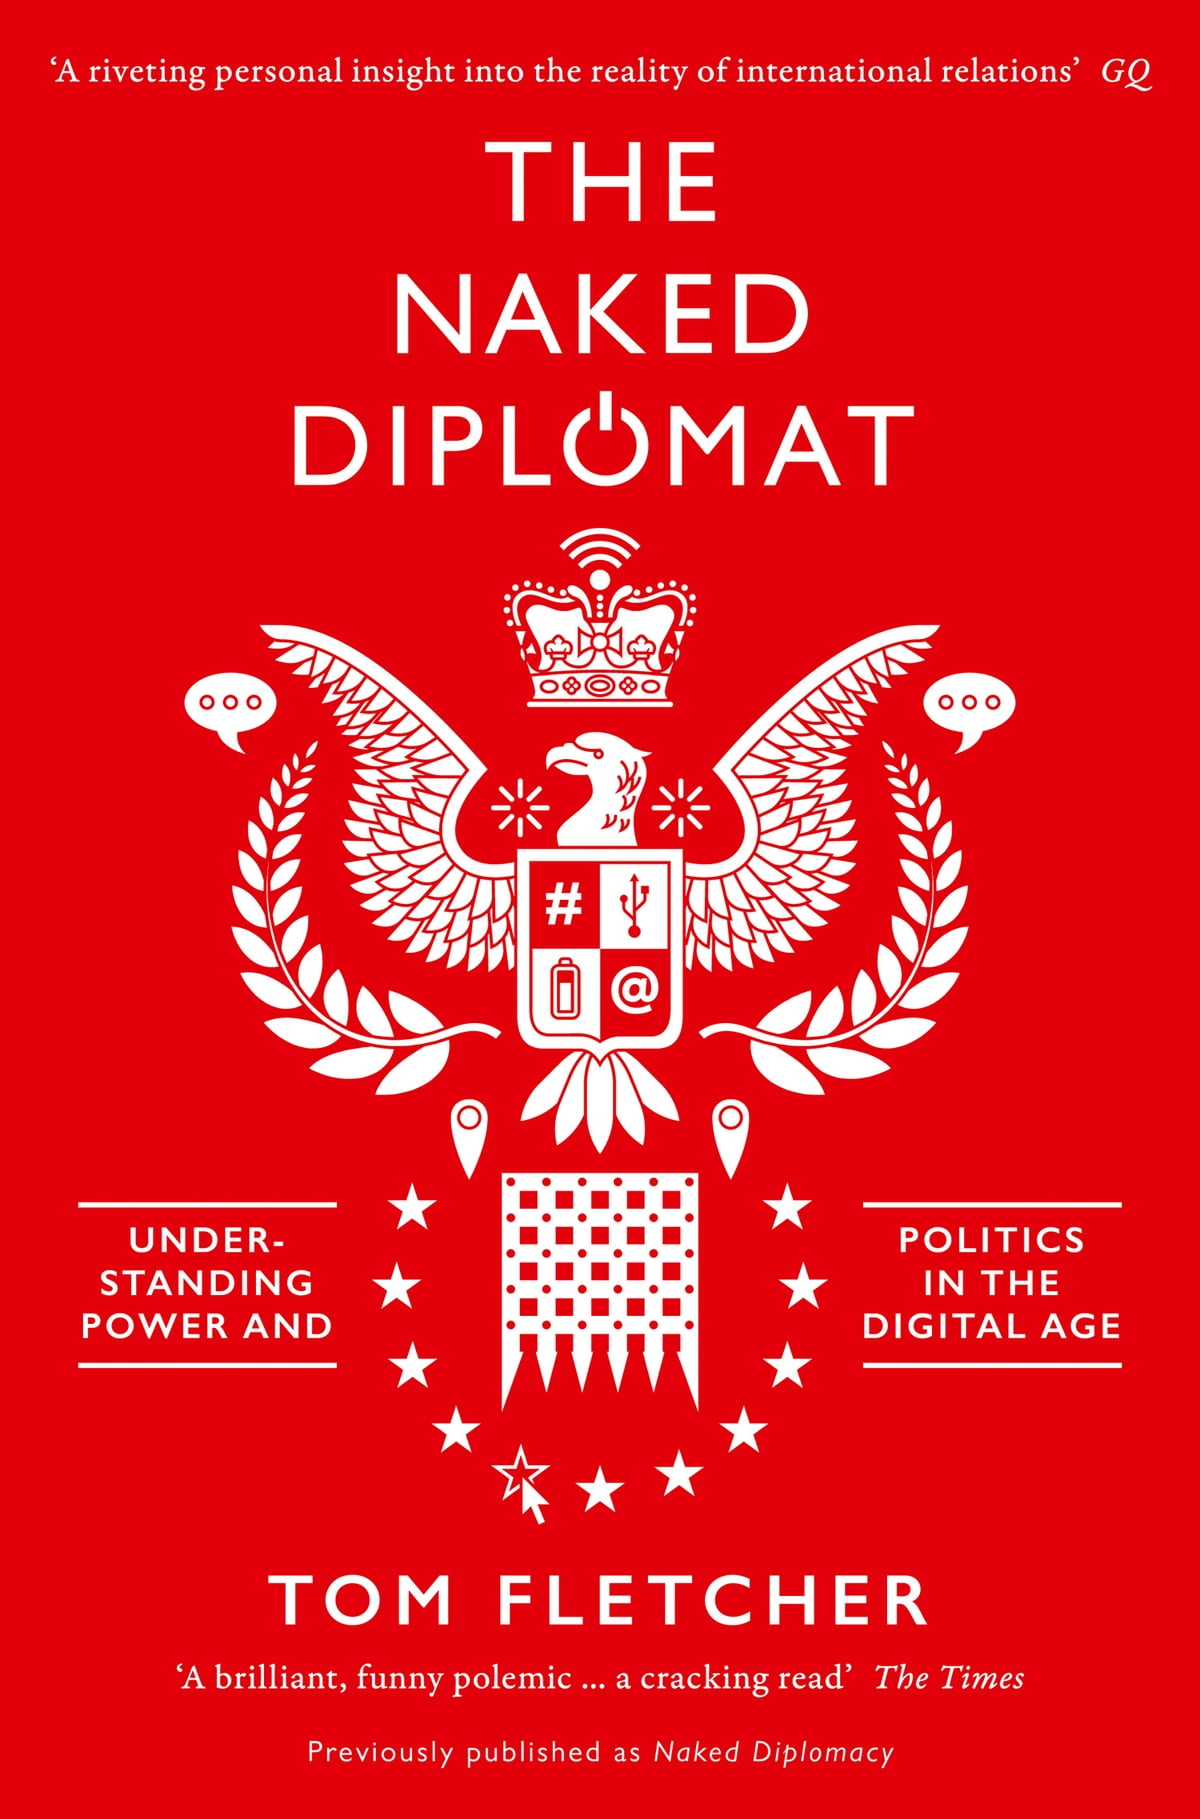 The Naked Diplomat Understanding Power And Politics In The Digital